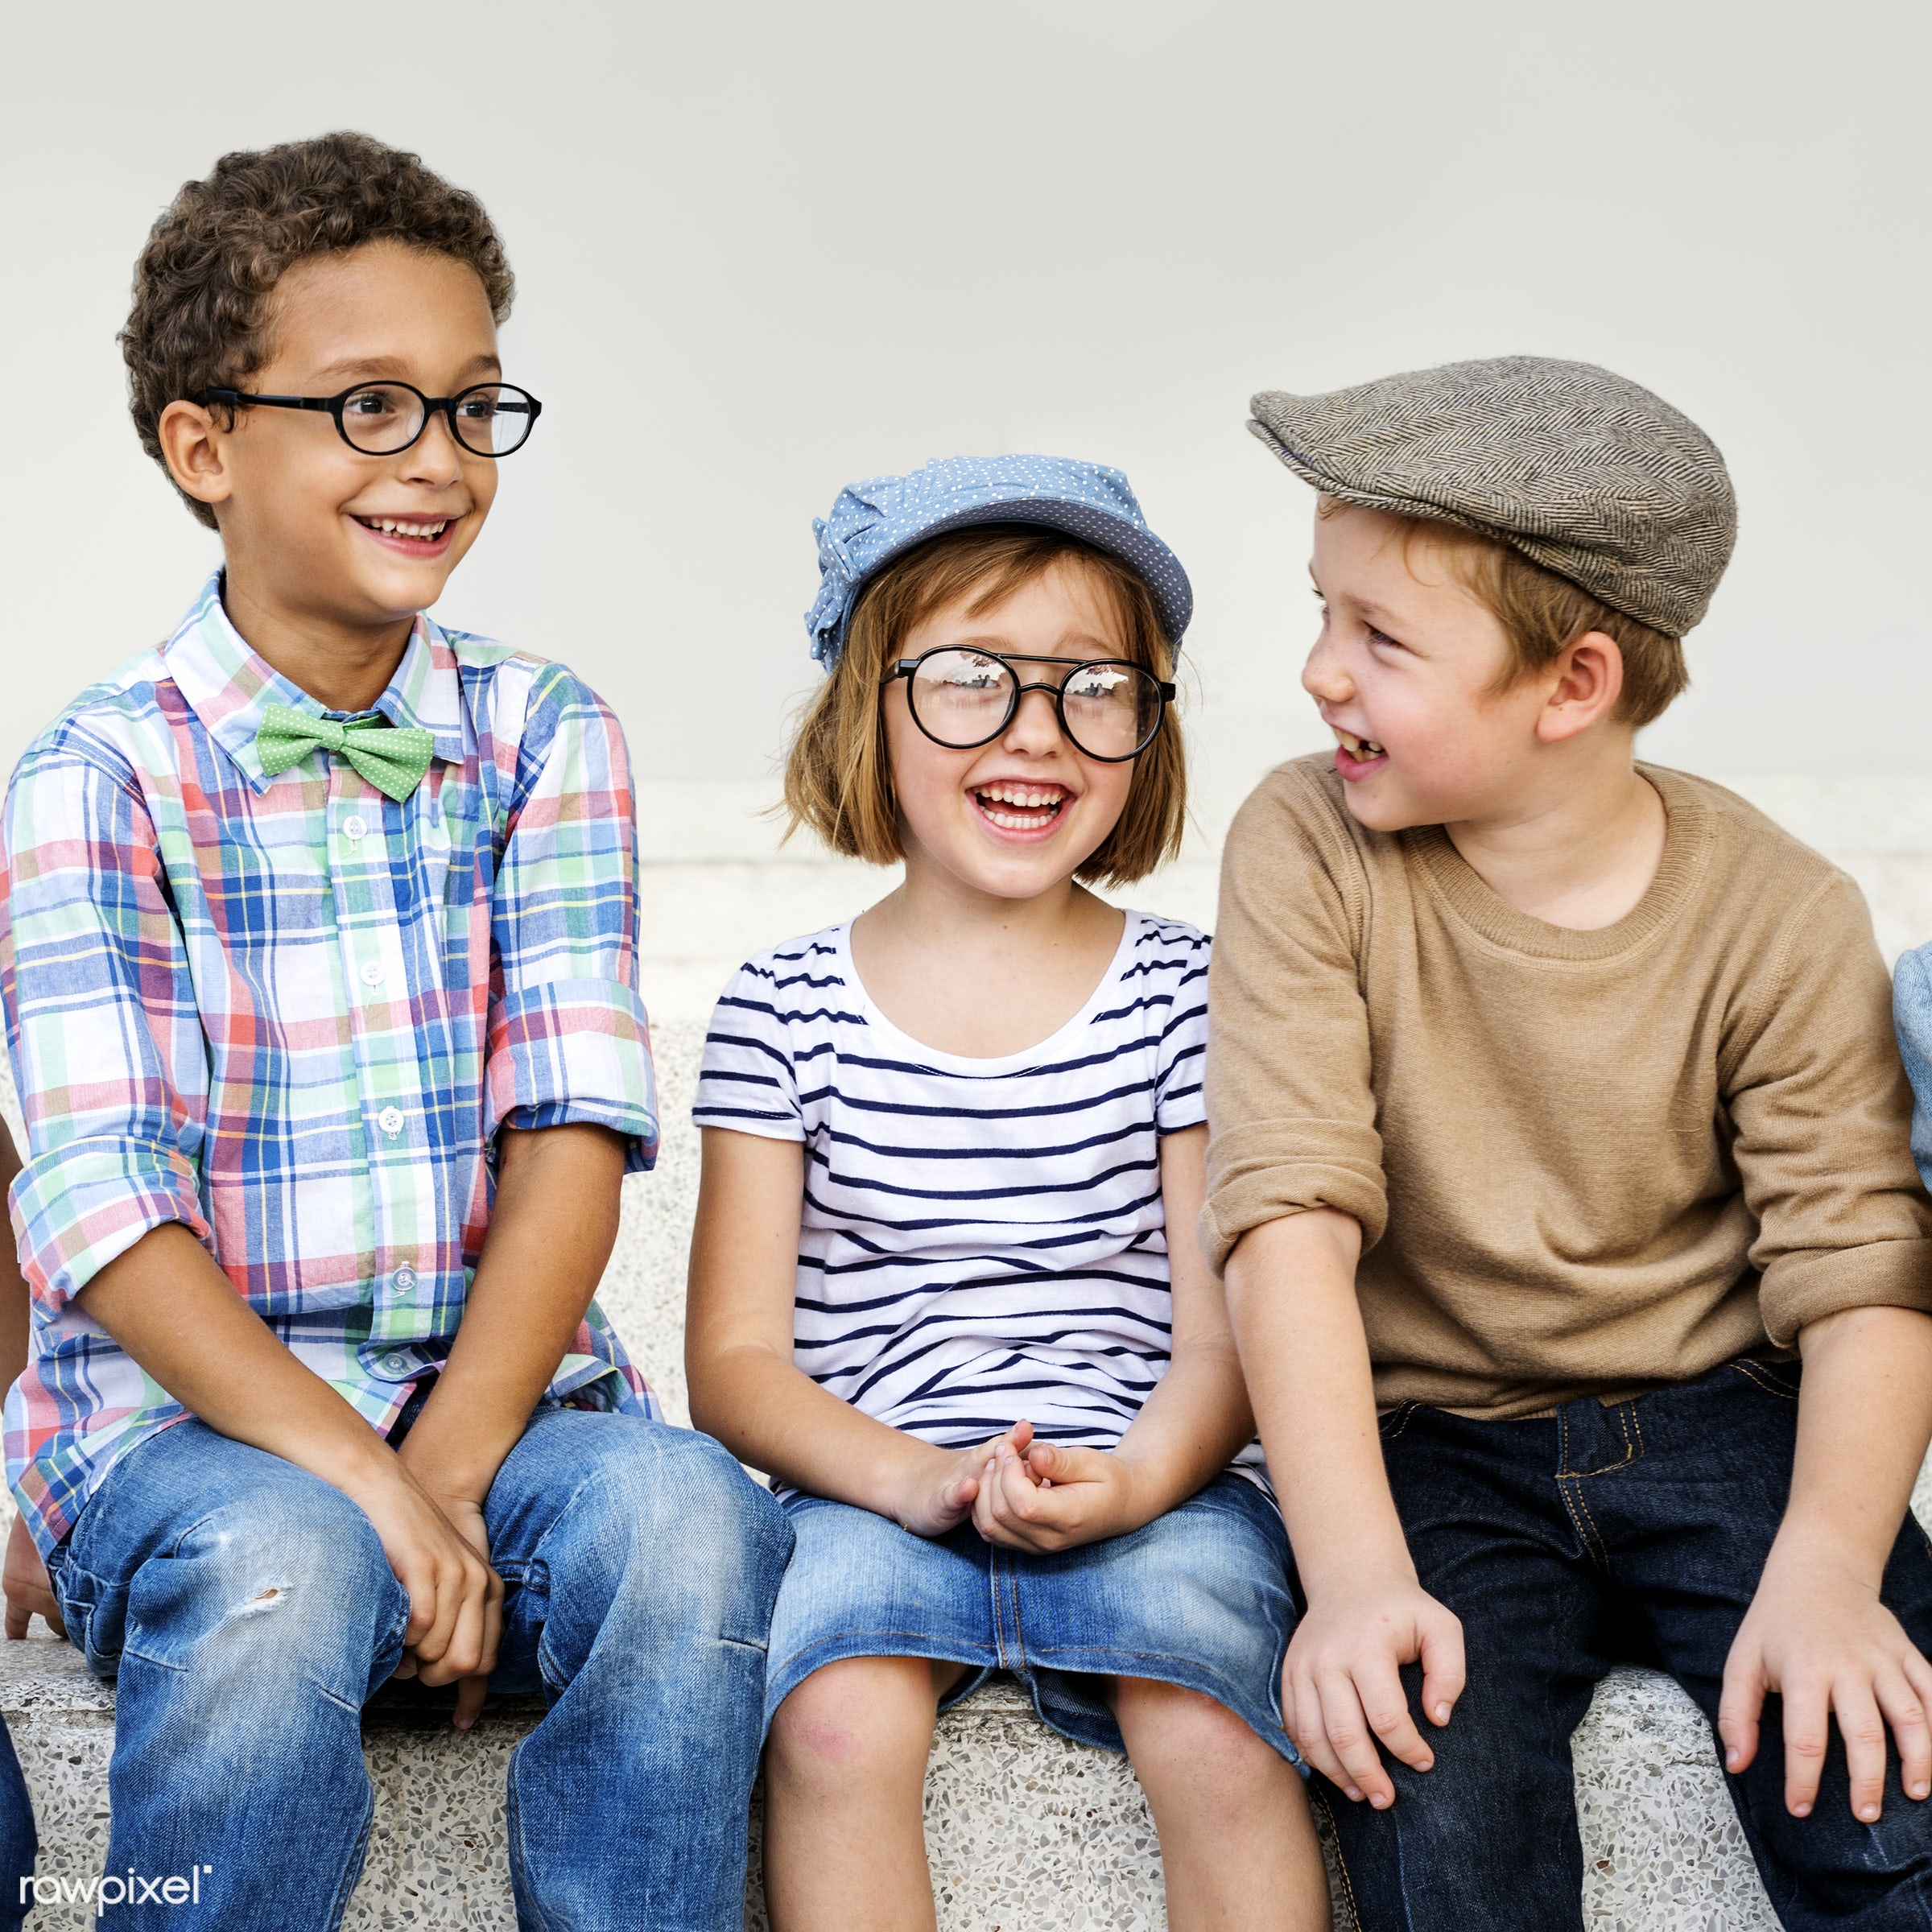 activities, adorable, asian ethnicity, bonding, boys, casual, cheerful, child, childhood, children, colorful, cute,...